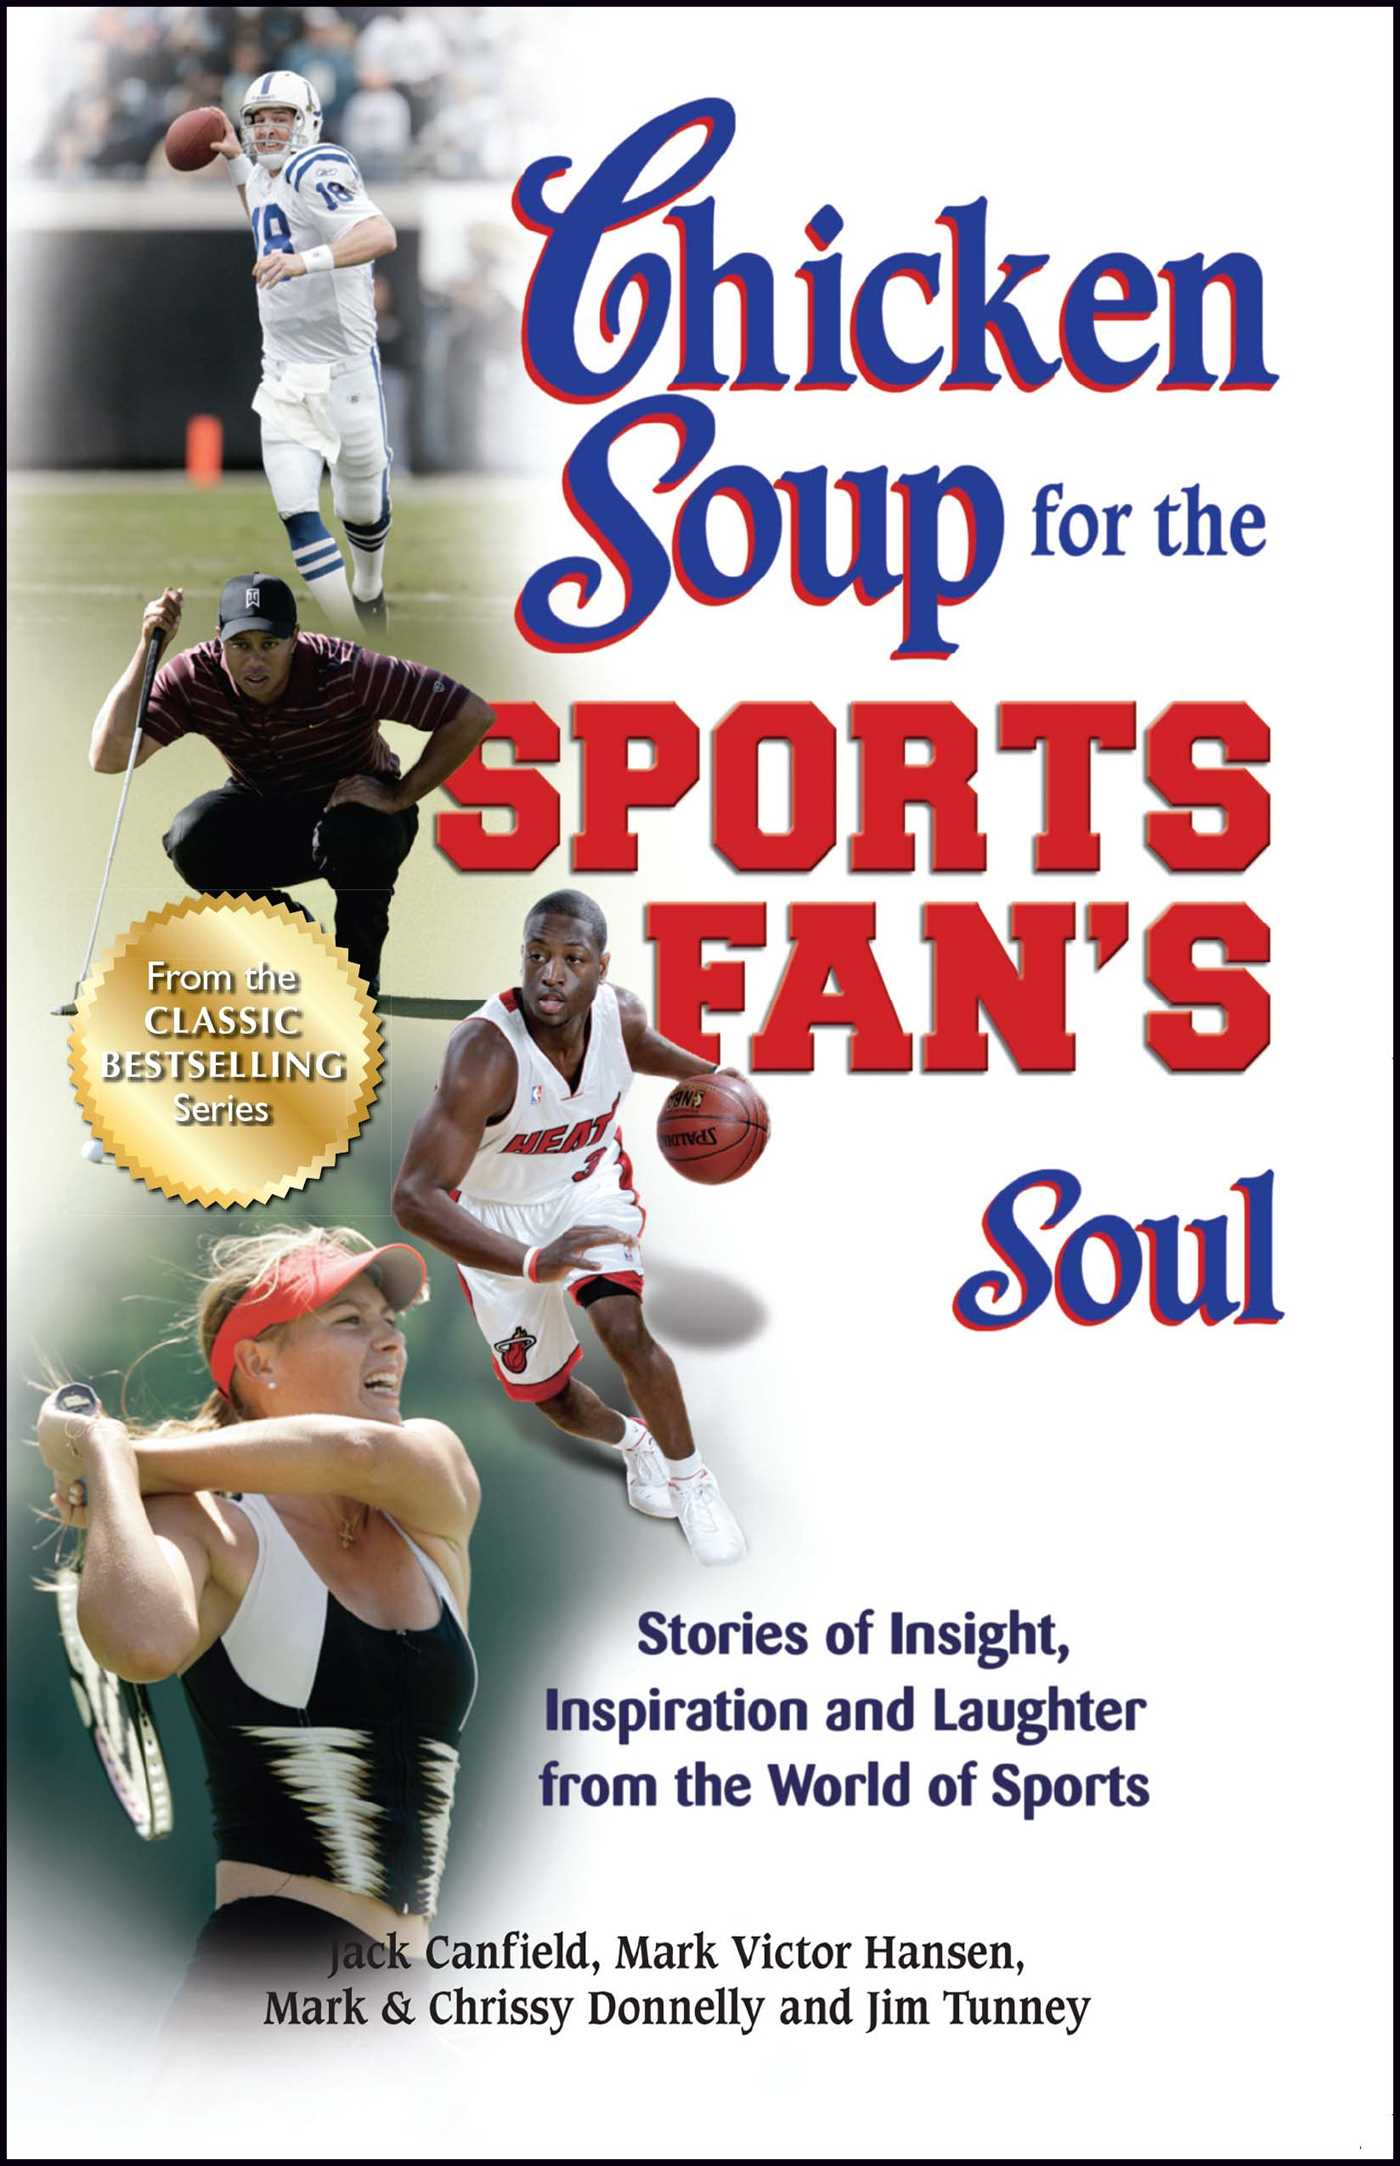 Chicken soup for the sports fans soul 9781623611187 hr